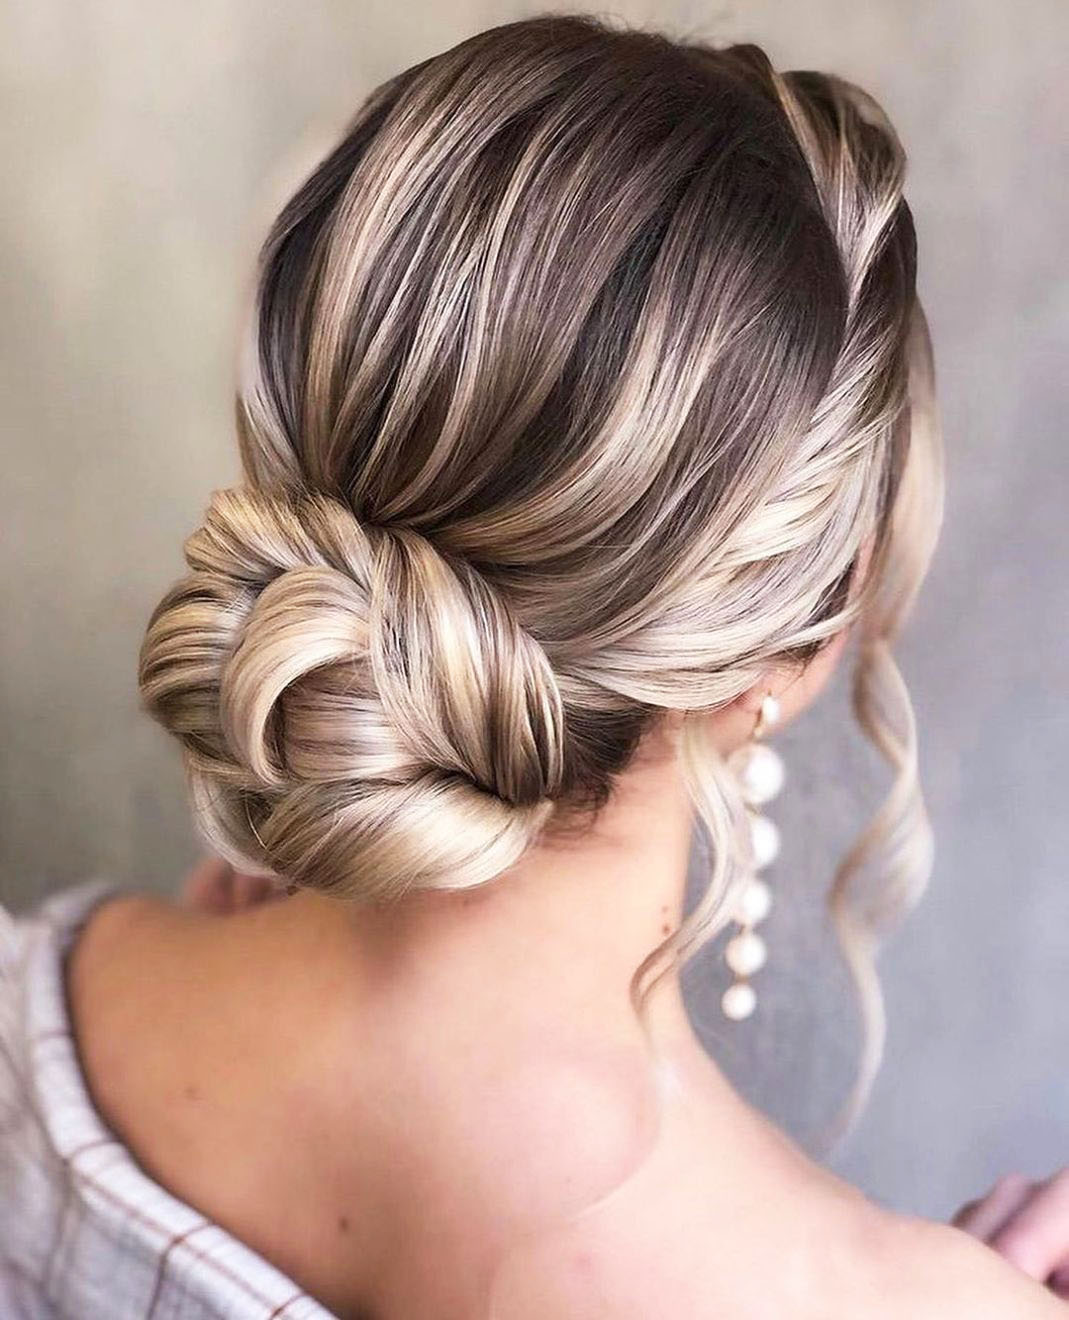 Hairstyles Winter 2020 ideas from hair stylists 14 6